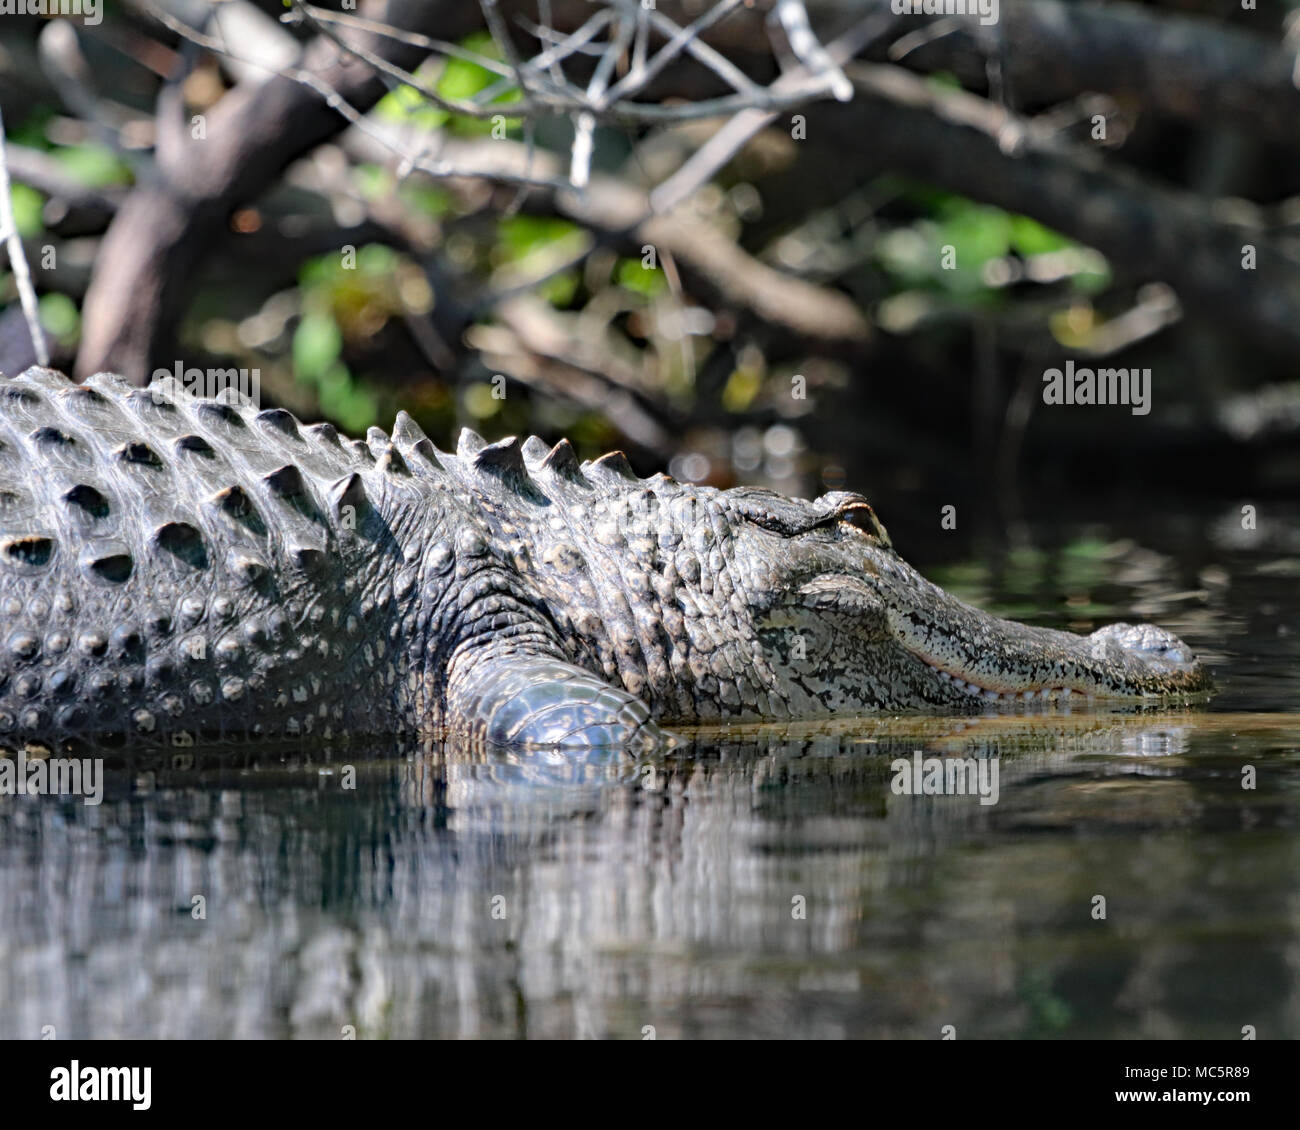 Alligator resting in the waters of Rainbow river in Dunnellon, Florida - Stock Image